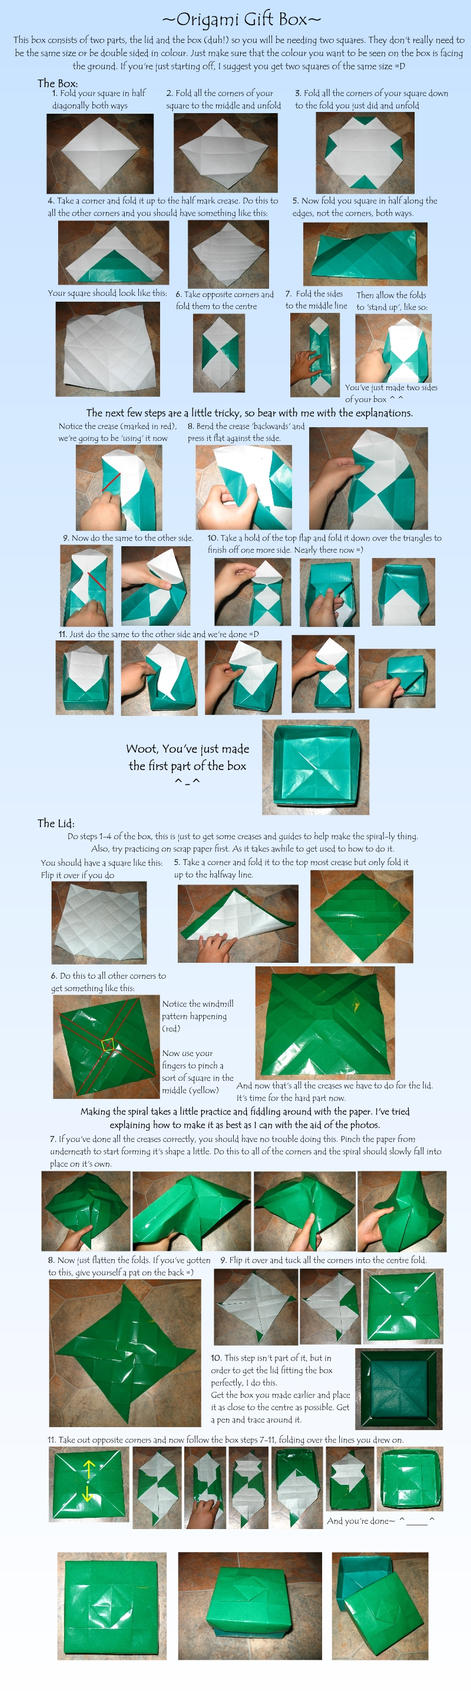 Tutorial origami gift box by loucife on deviantart tutorial origami gift box by loucife solutioingenieria Gallery